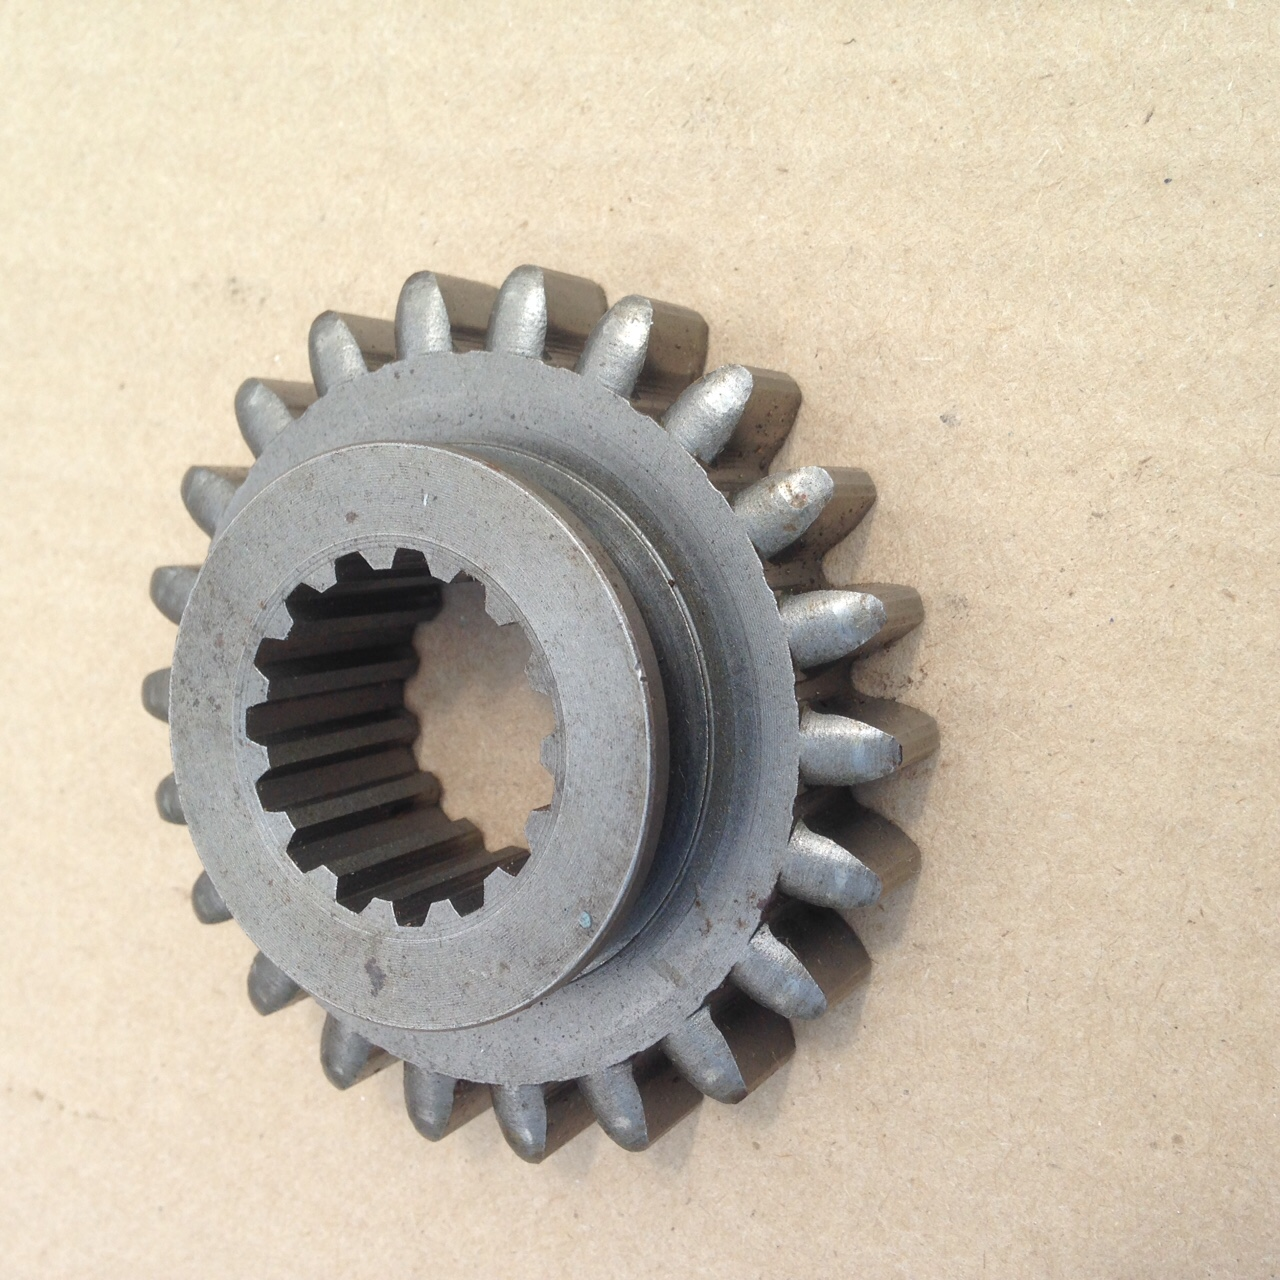 194190-26630 Gear YM1500 ( Used ) 22 Teeth.